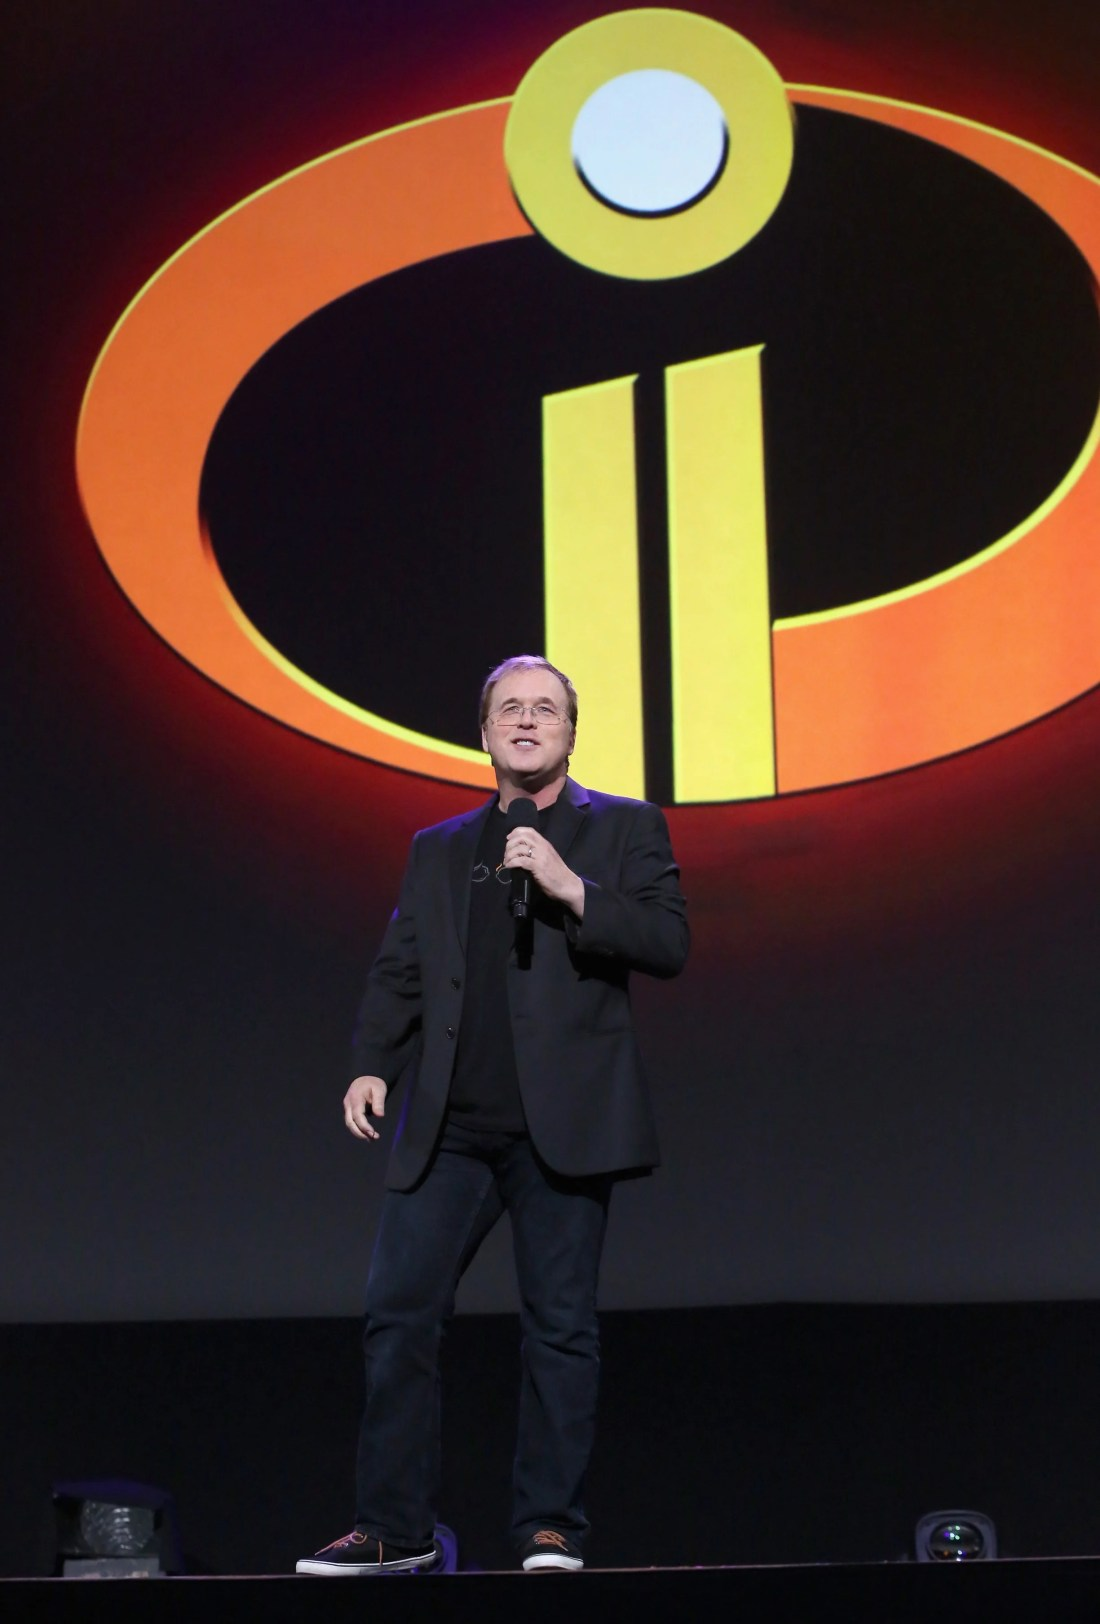 Director Brad Bird of INCREDIBLES 2 took part today in the Walt Disney Studios animation presentation at Disney's D23 EXPO 2017 in Anaheim, Calif. INCREDIBLES 2 will be released in U.S. theaters on June 15, 2018.